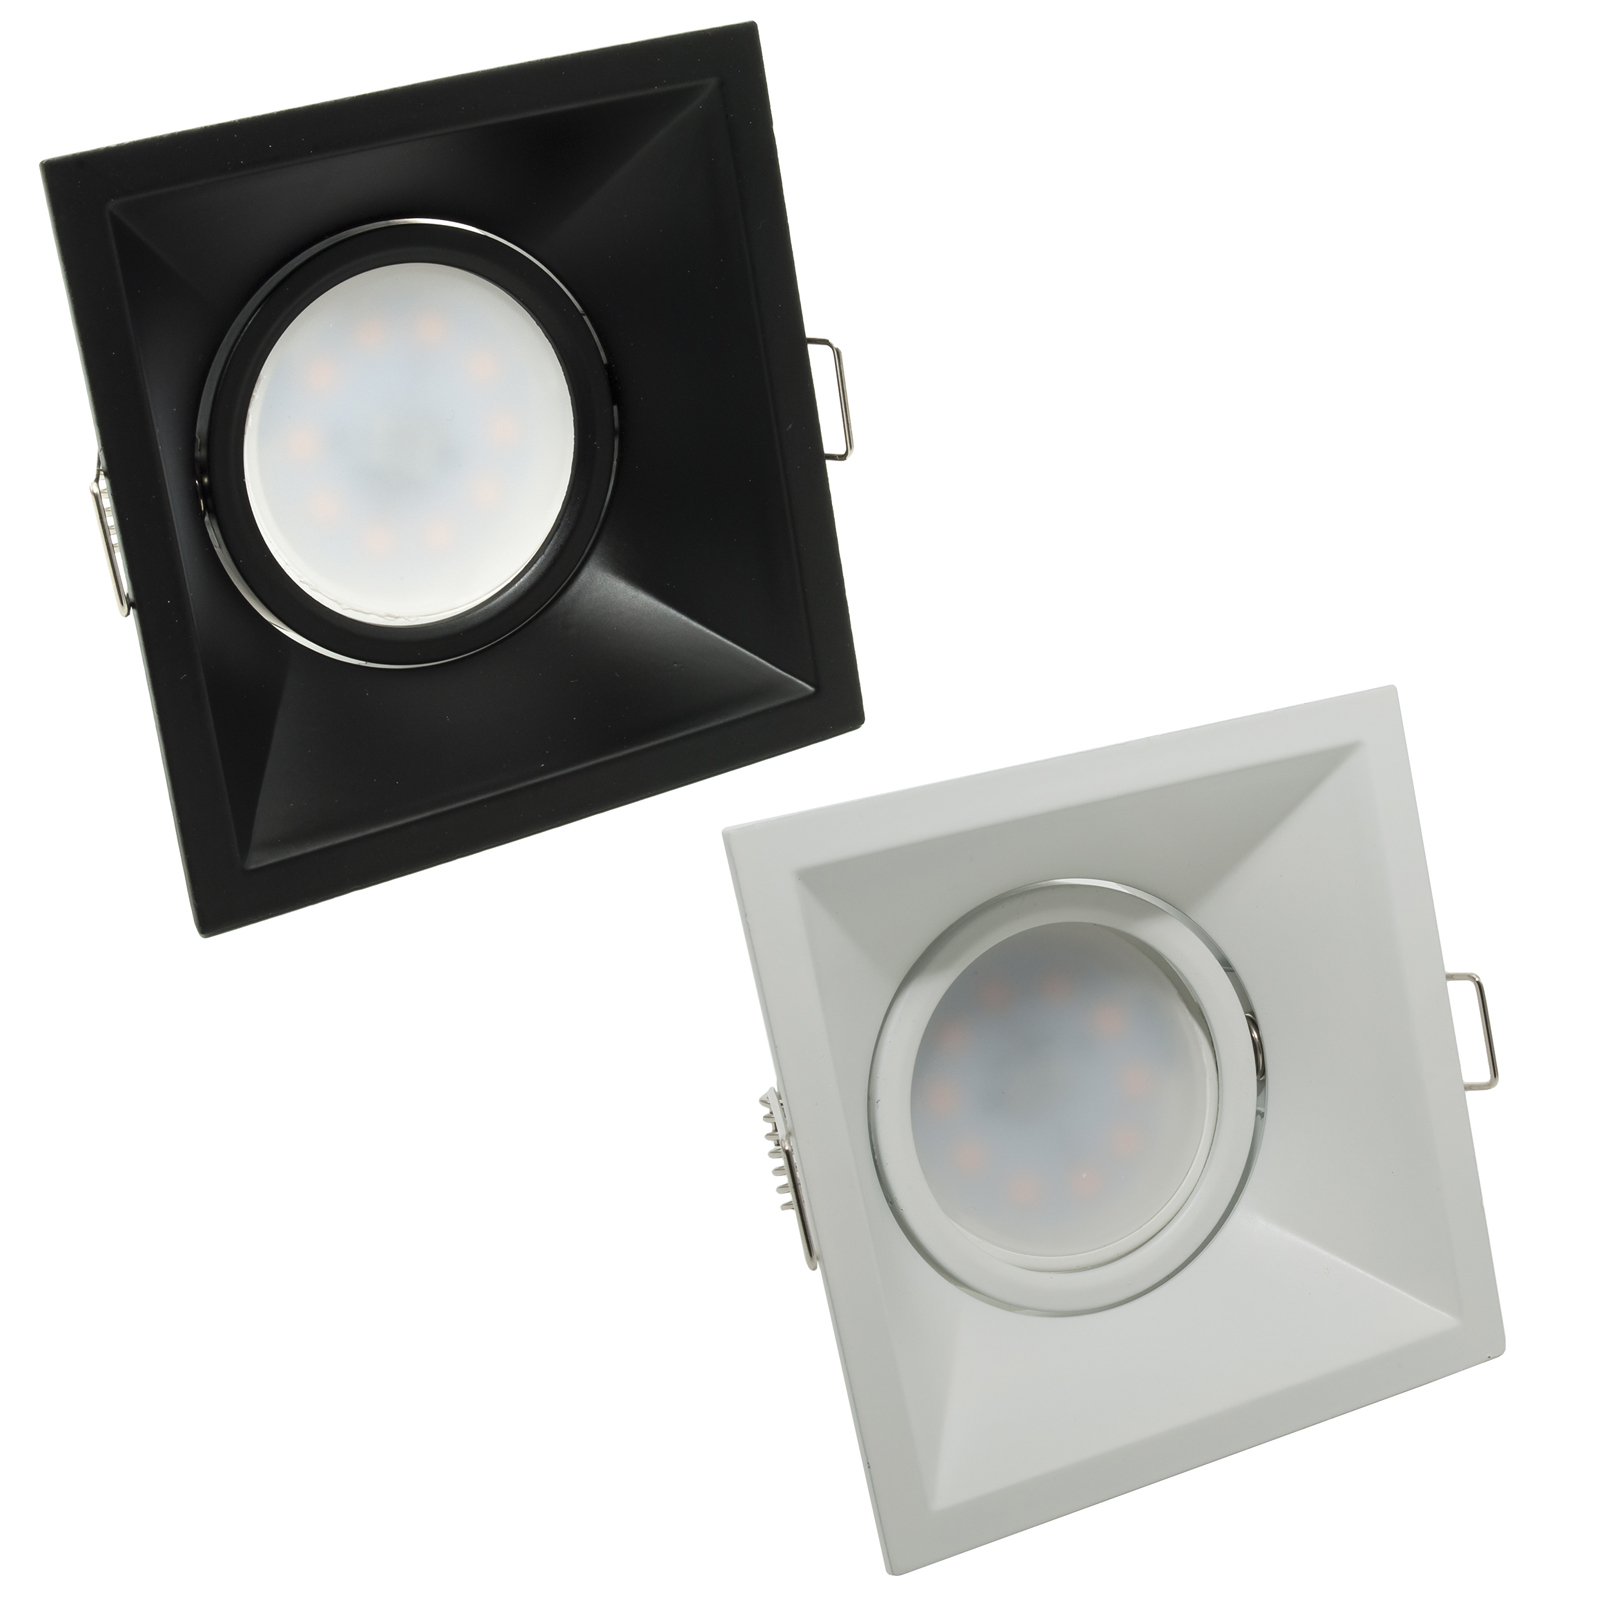 LED spotlight 8W recessed square lamp housing door adjustable hole 8cm diffuse light